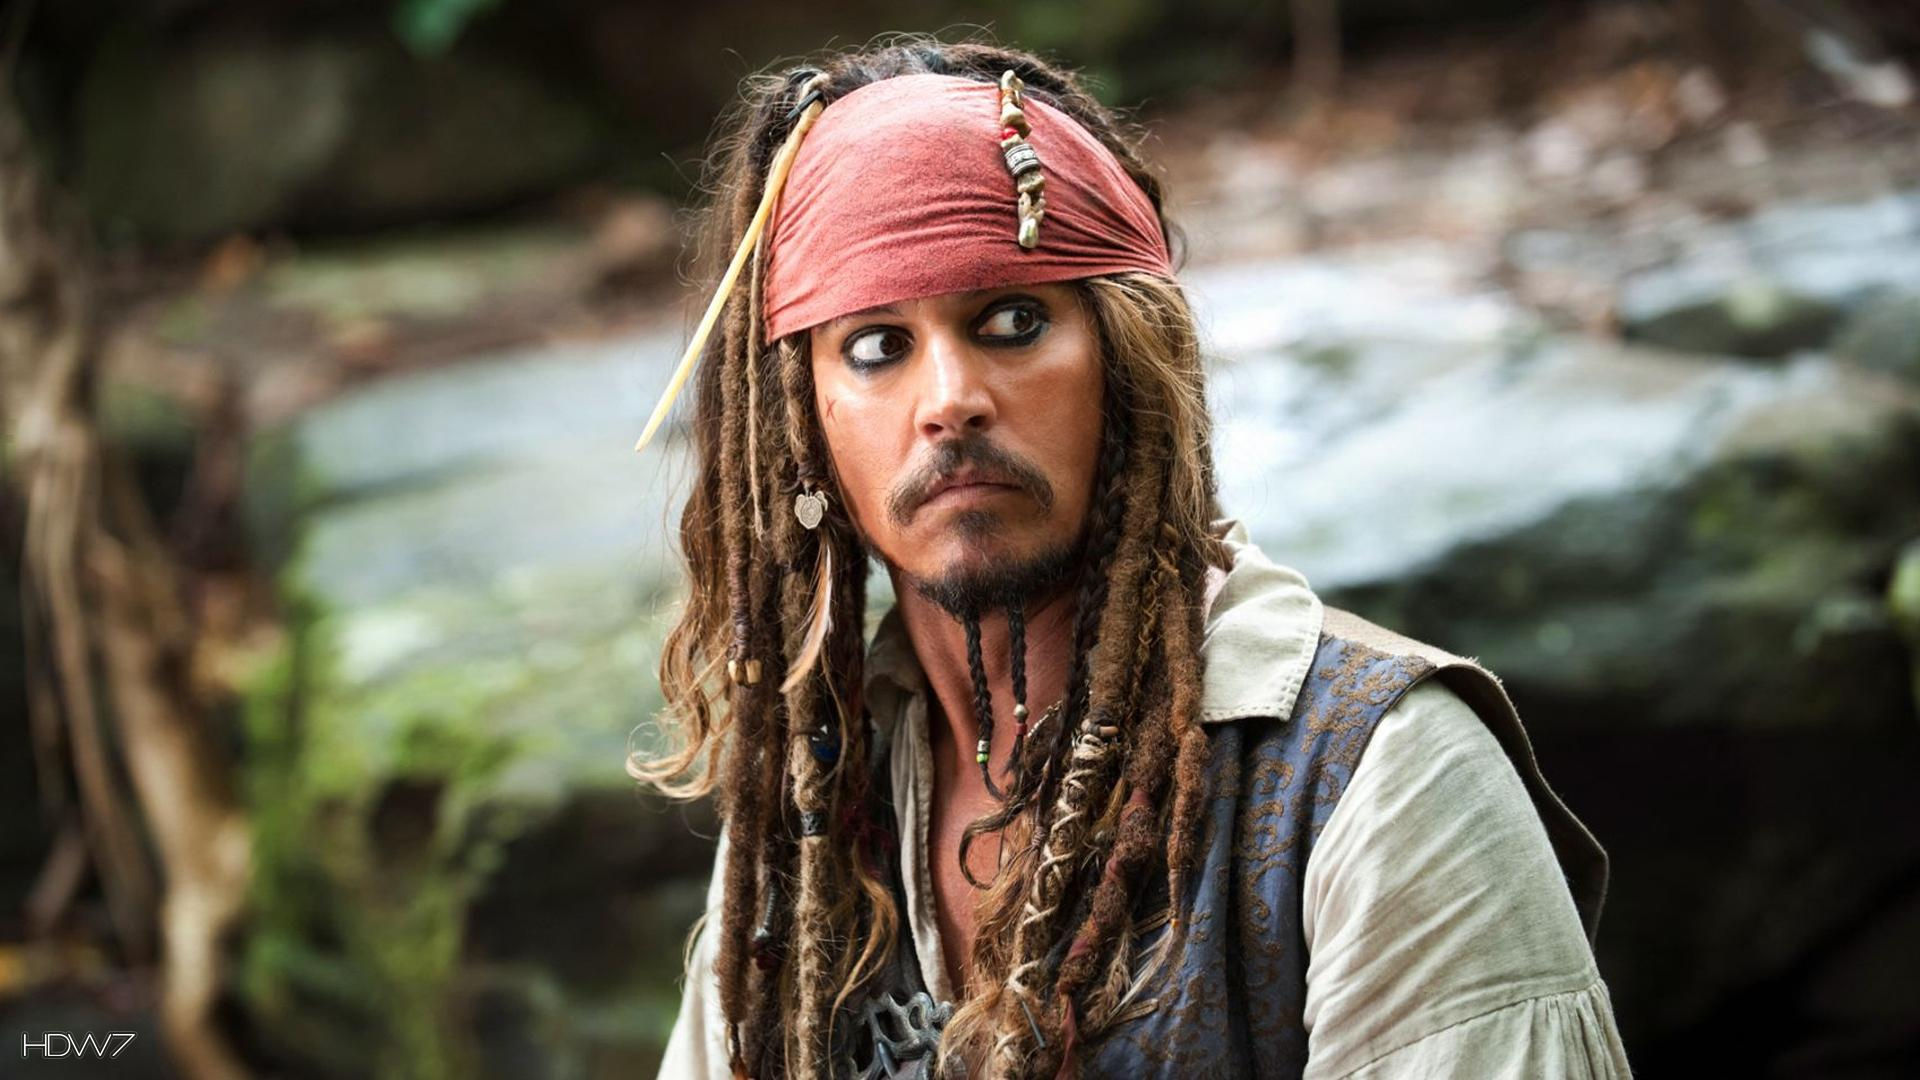 pirates of the caribbean jack sparrow 1920x1080 | hd wallpaper